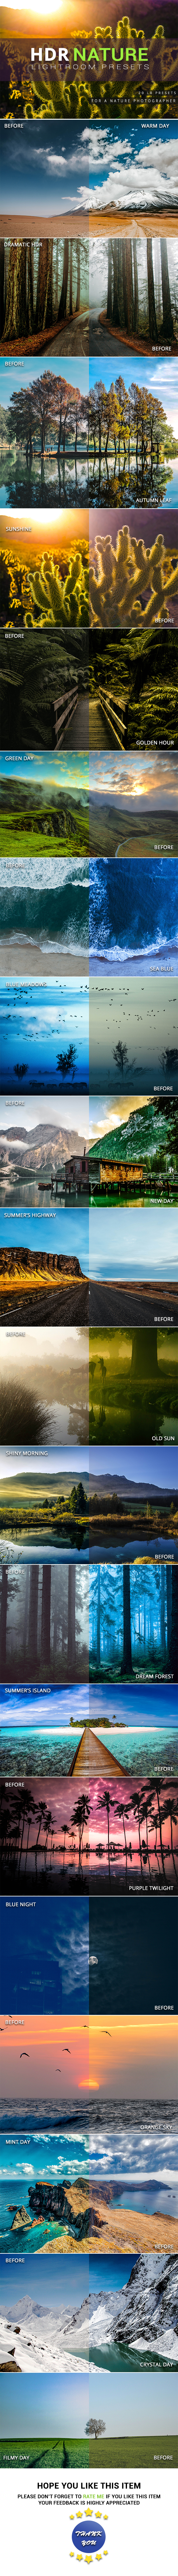 Hdr Nature Lightroom Presets - Lightroom Presets Add-ons